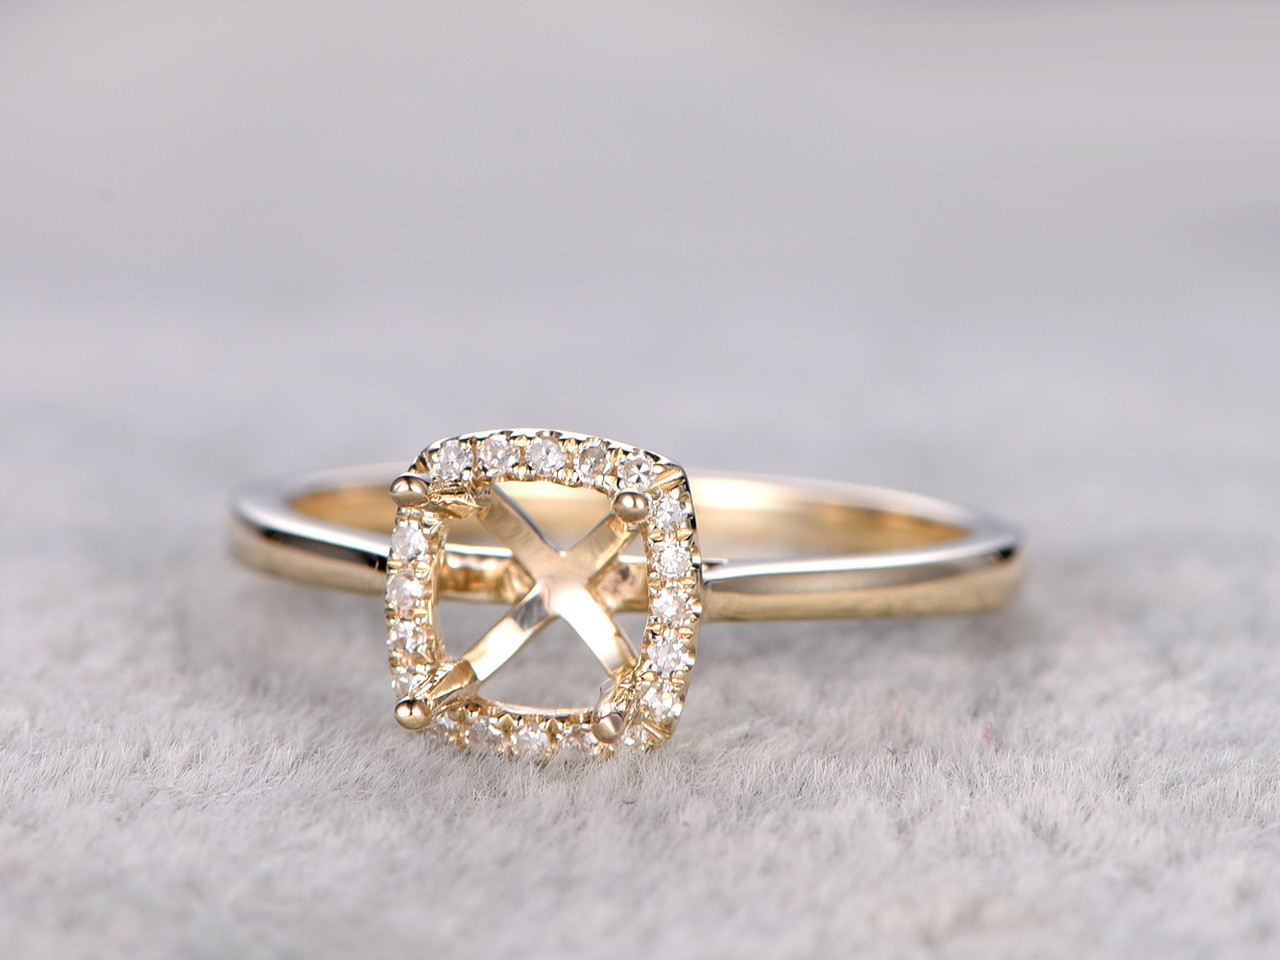 engagement ring settings onlyring settings without stones BBBGEM